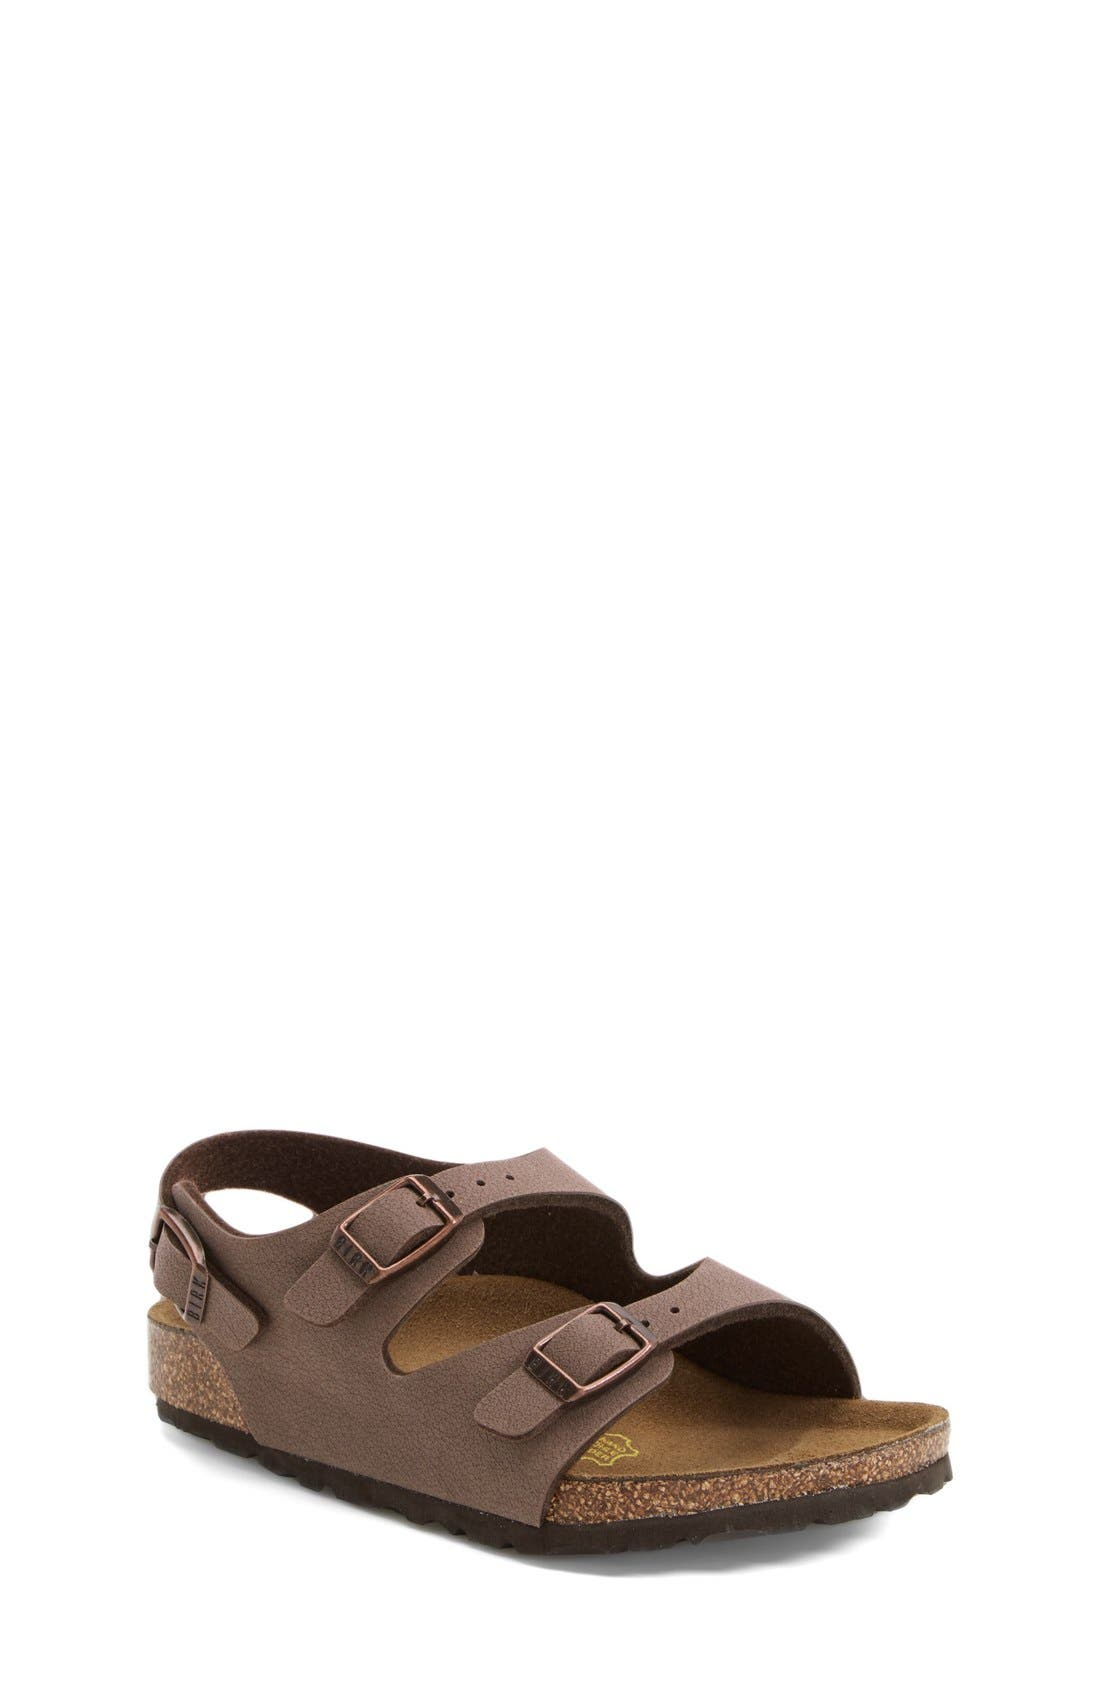 Main Image - Birkenstock 'Roma' Sandal (Walker, Toddler & Little Kid)